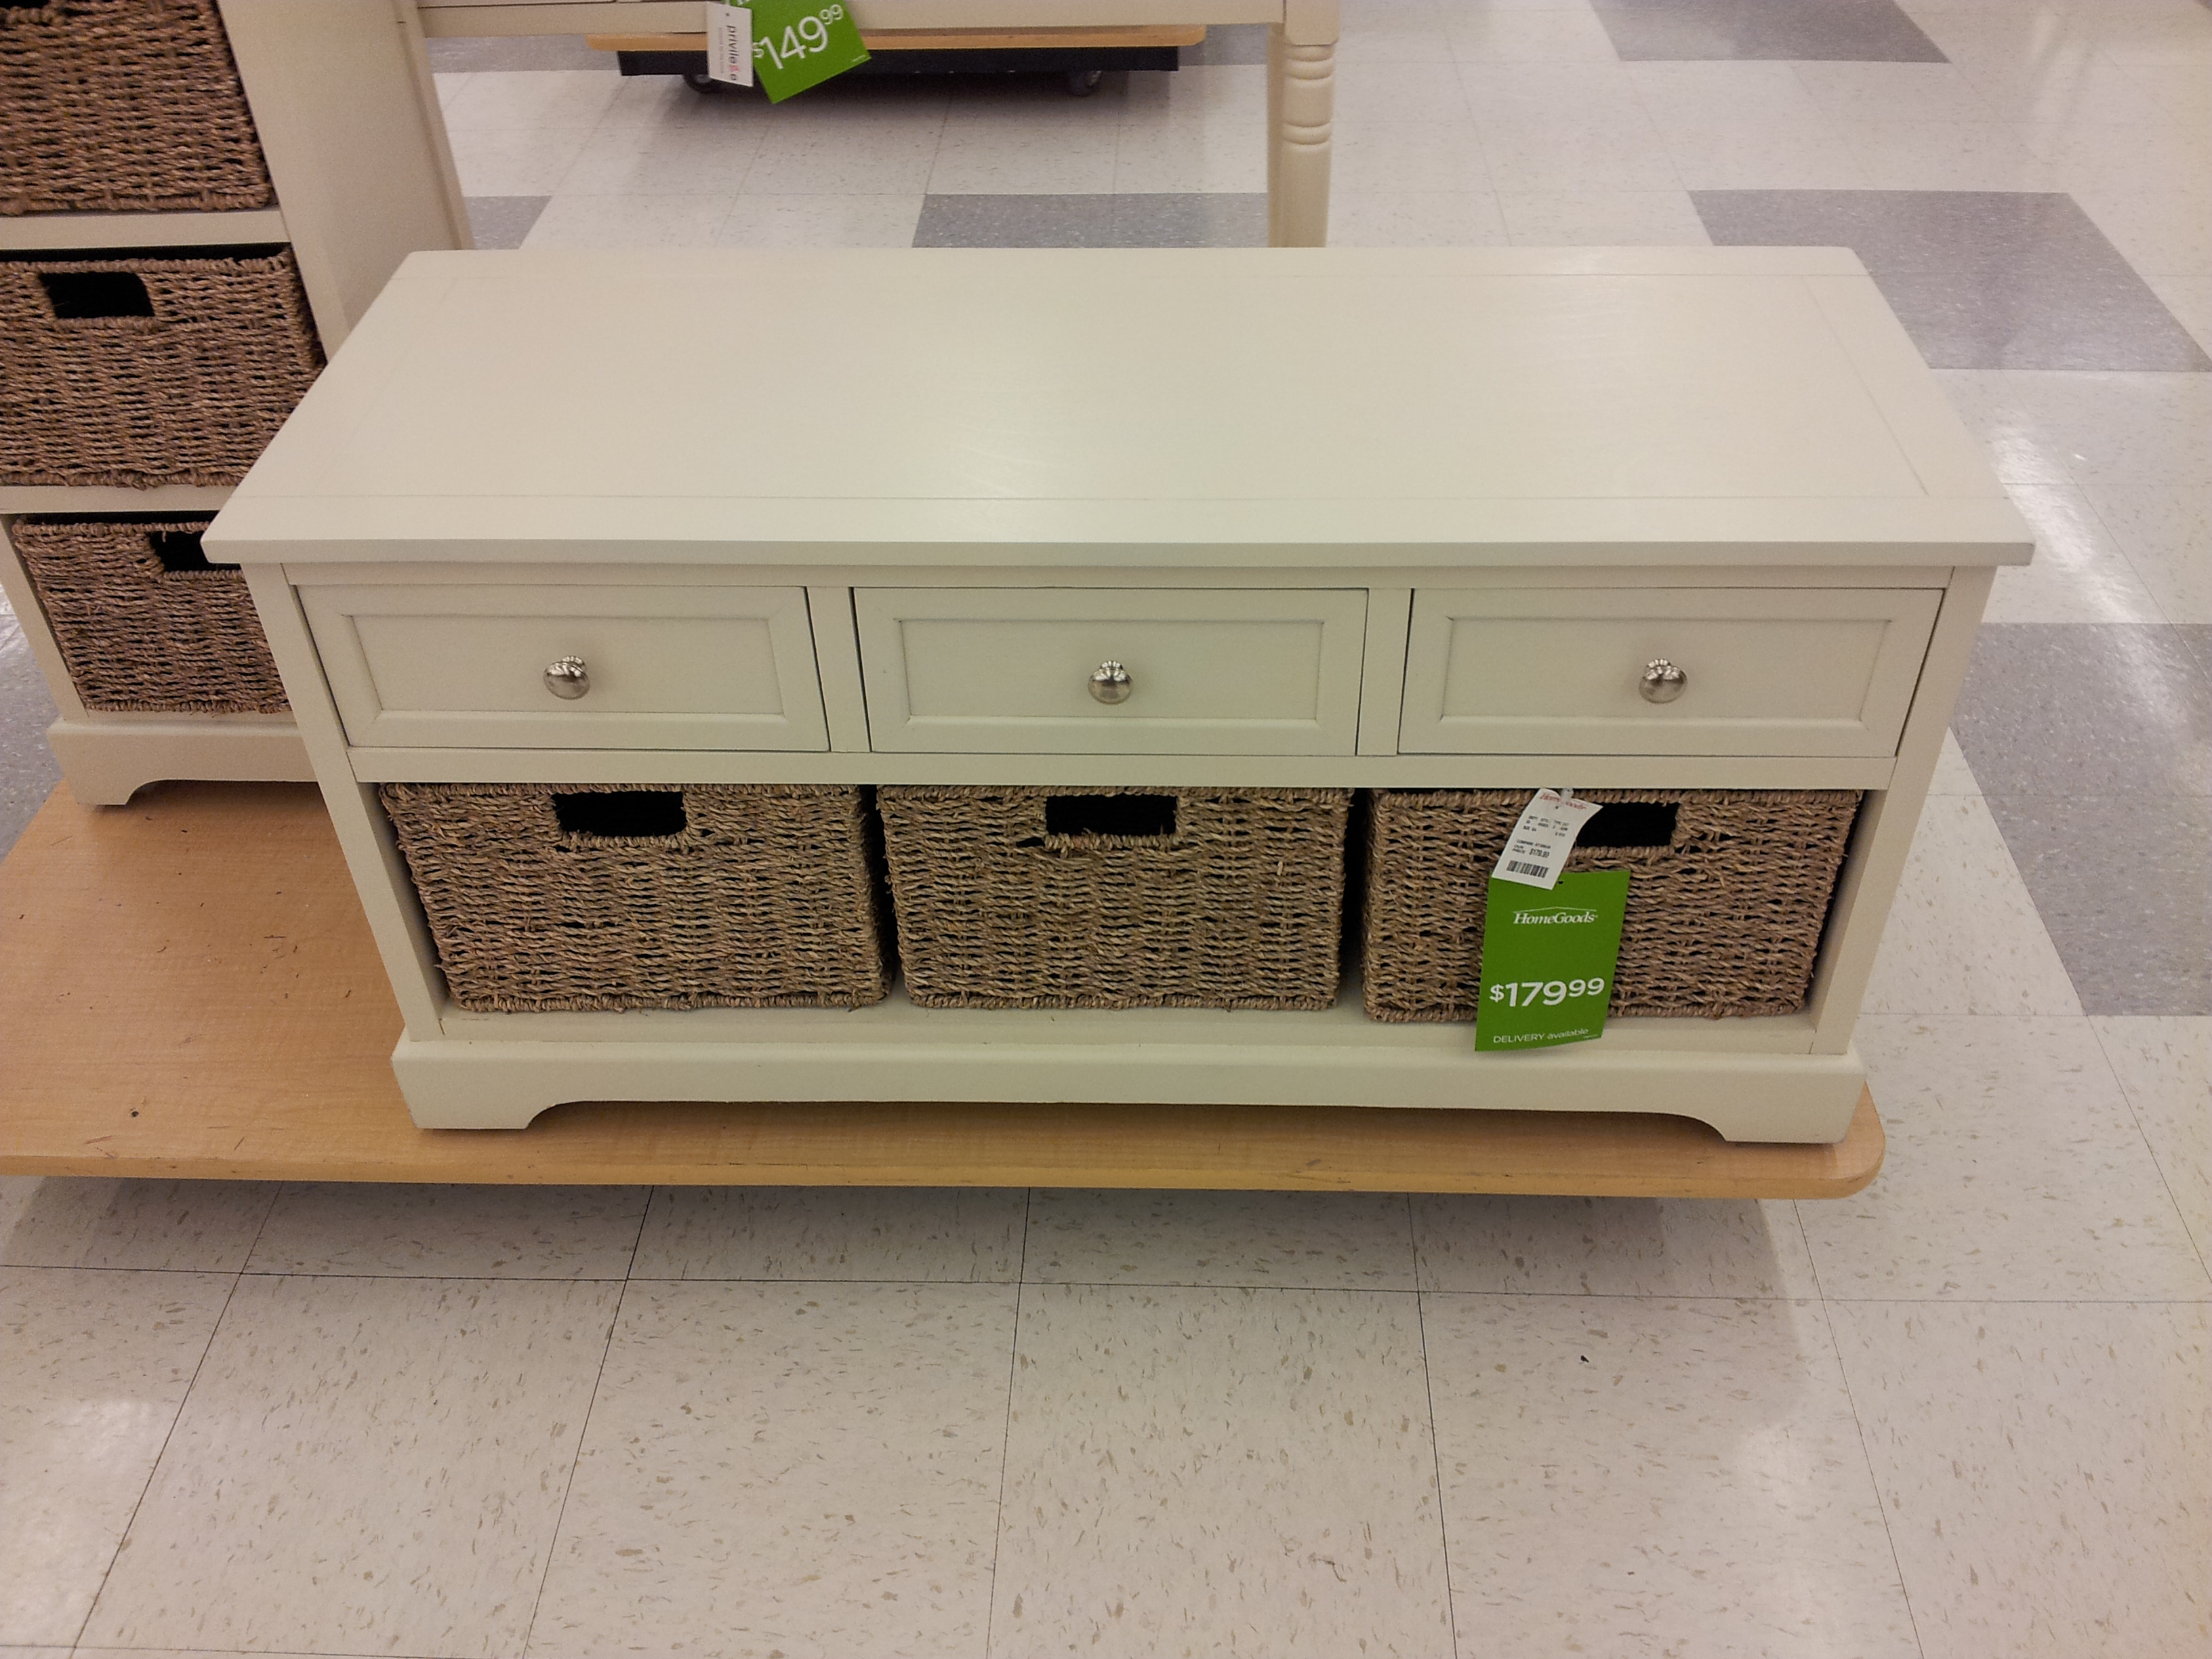 TJ Maxx Storage Design With Drawers In White Color